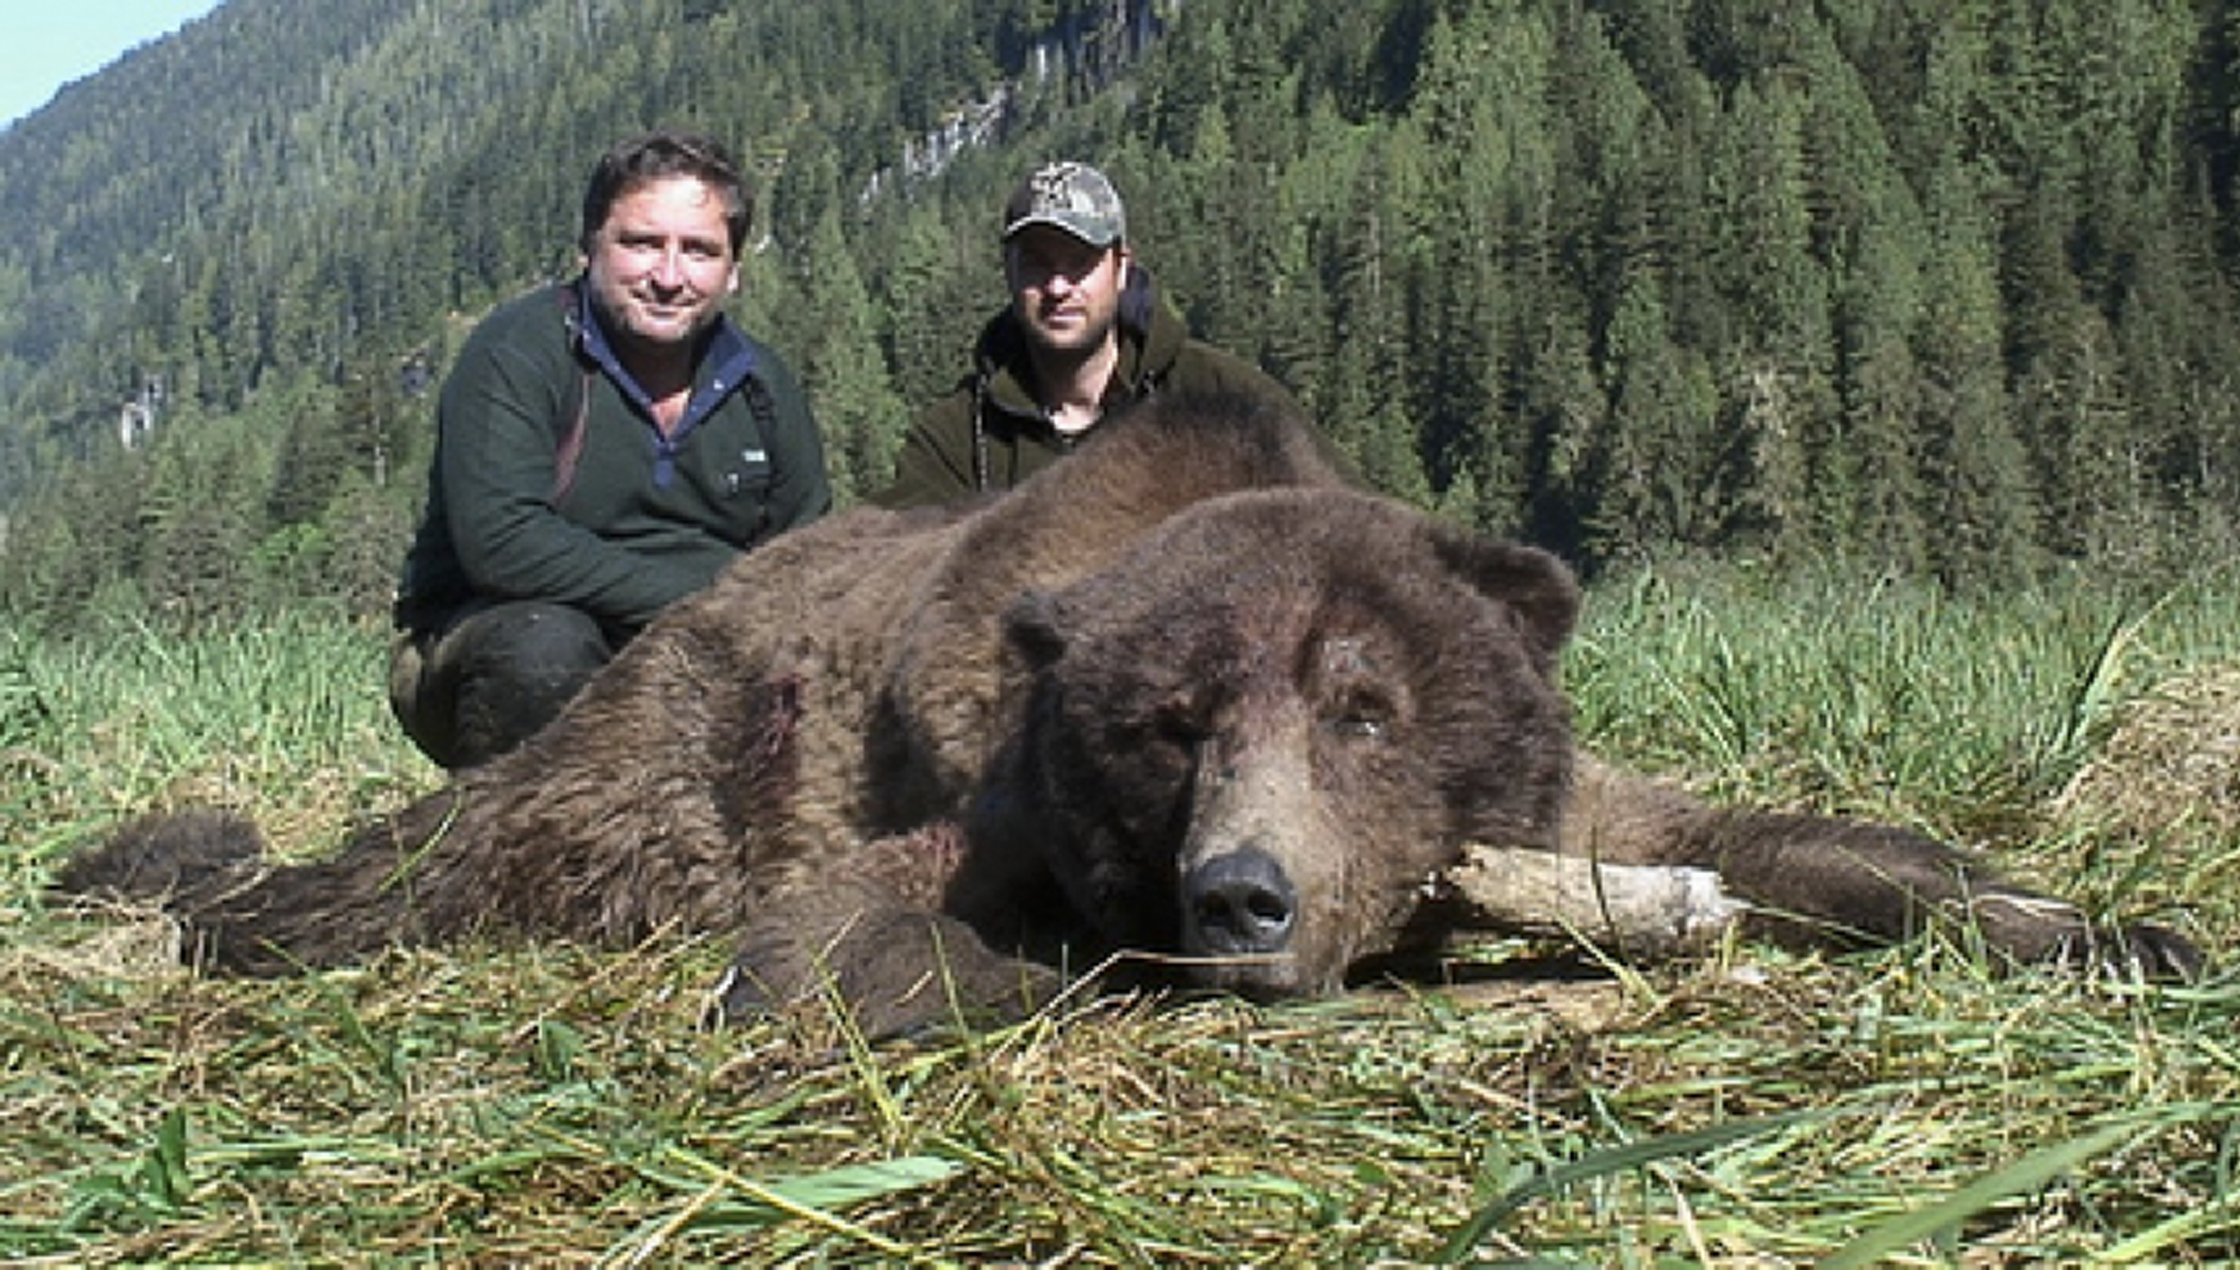 Huge Bruins: 17 Brown and Grizzly Bears from the B&C Record